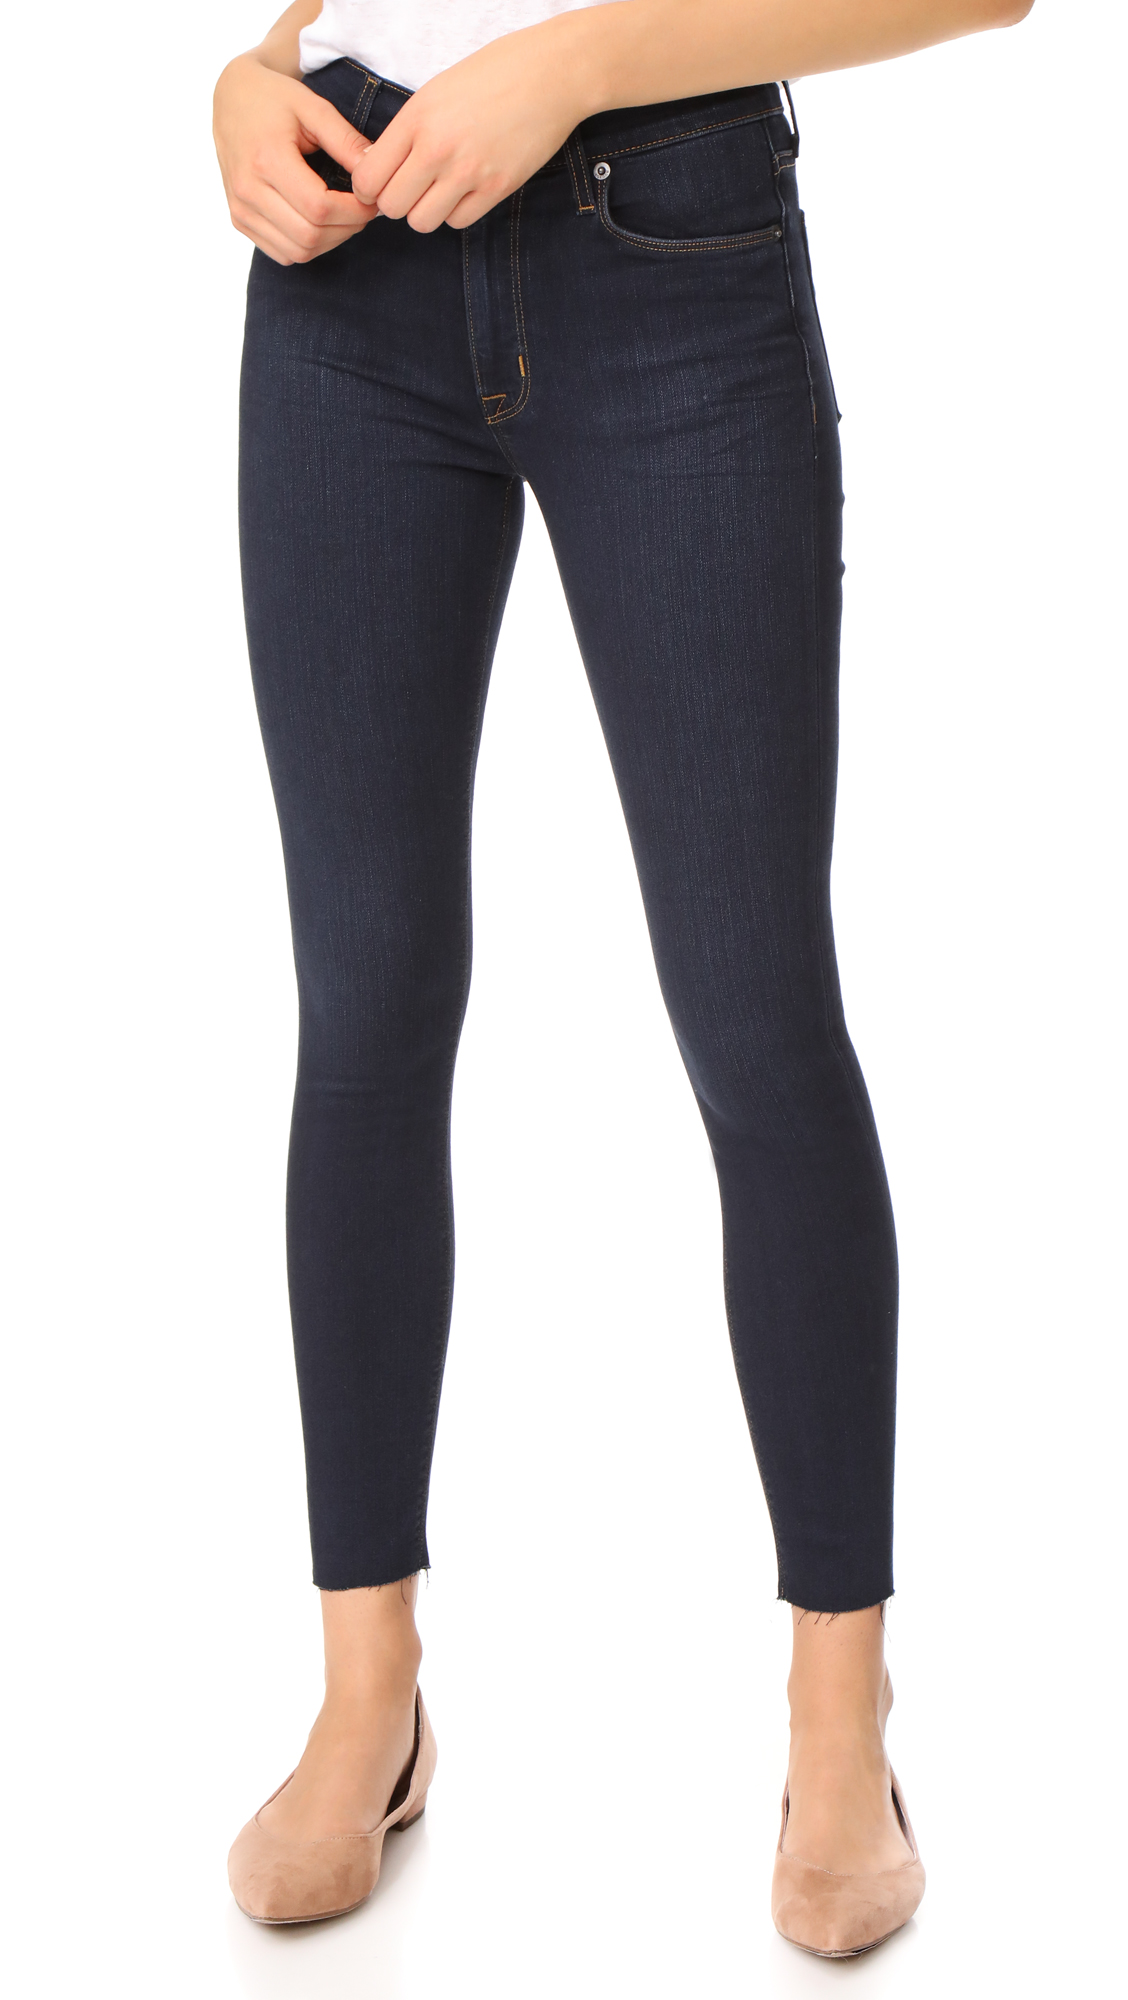 Barbara High Waist Super Skinny Jeans with Raw Hem